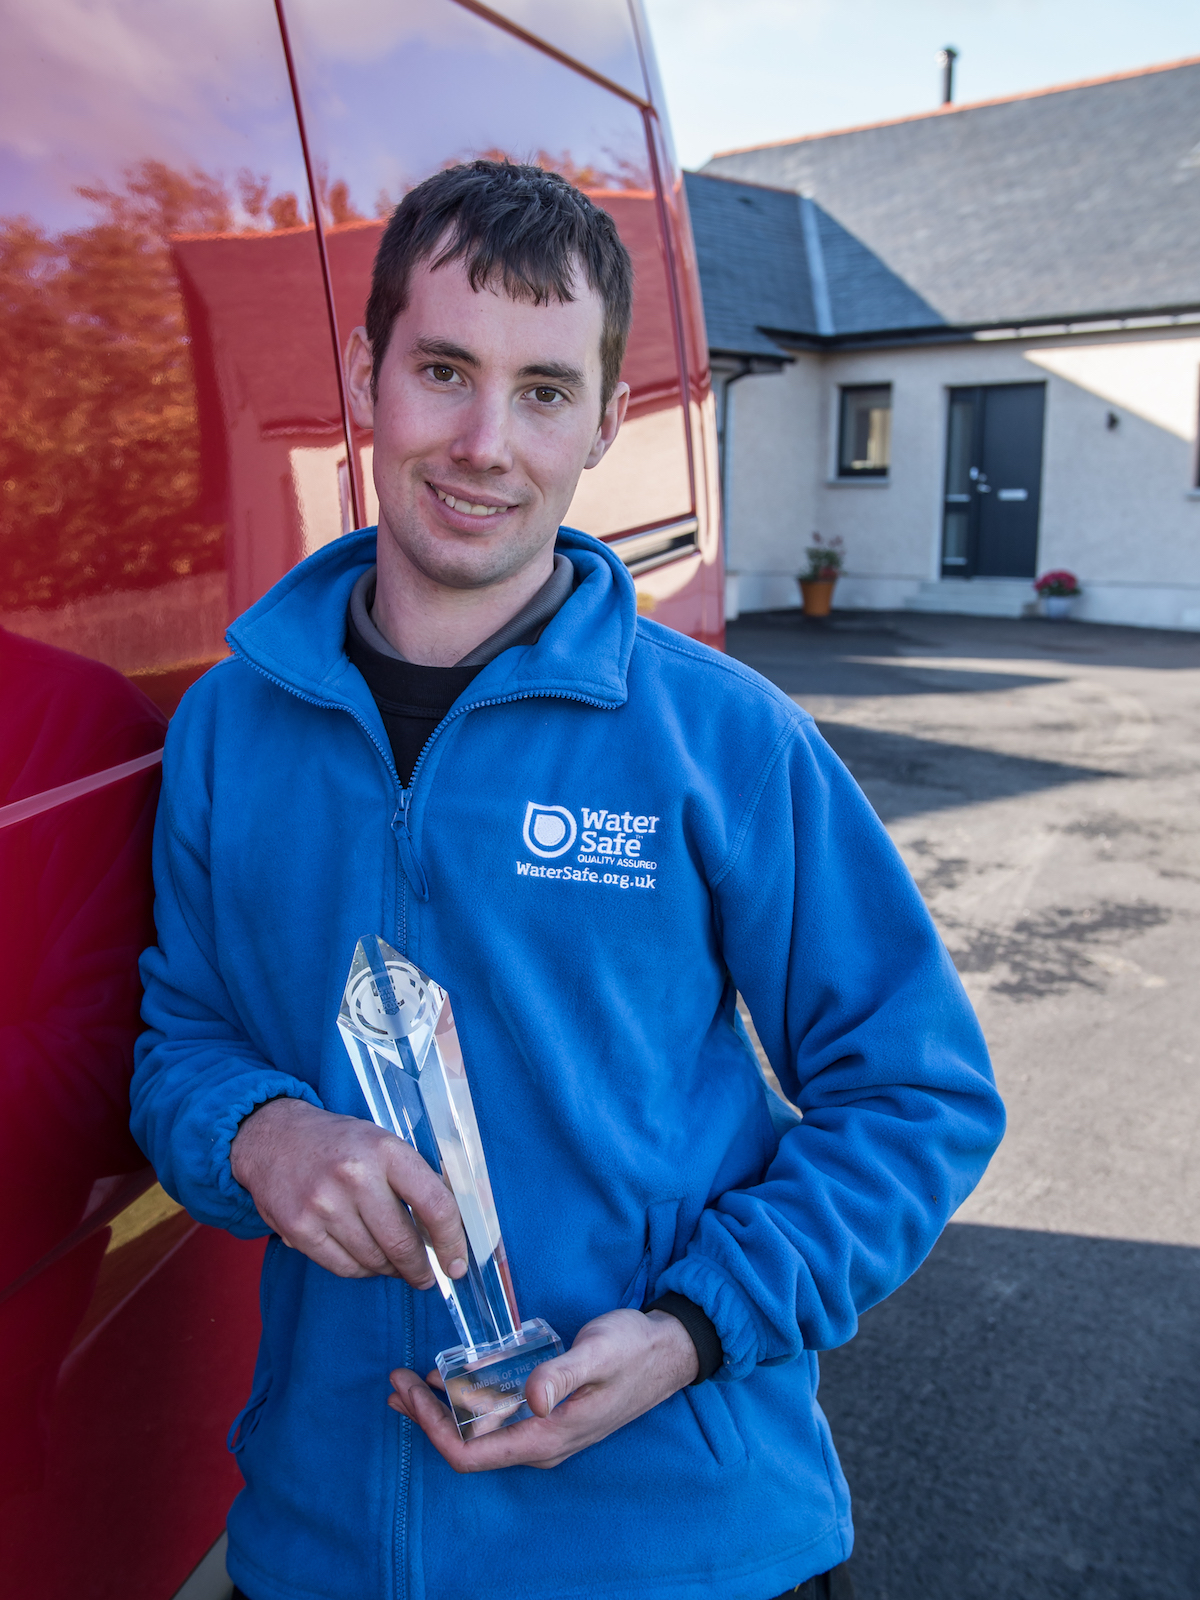 plumber of the year shaun scott explains what makes a good plumber